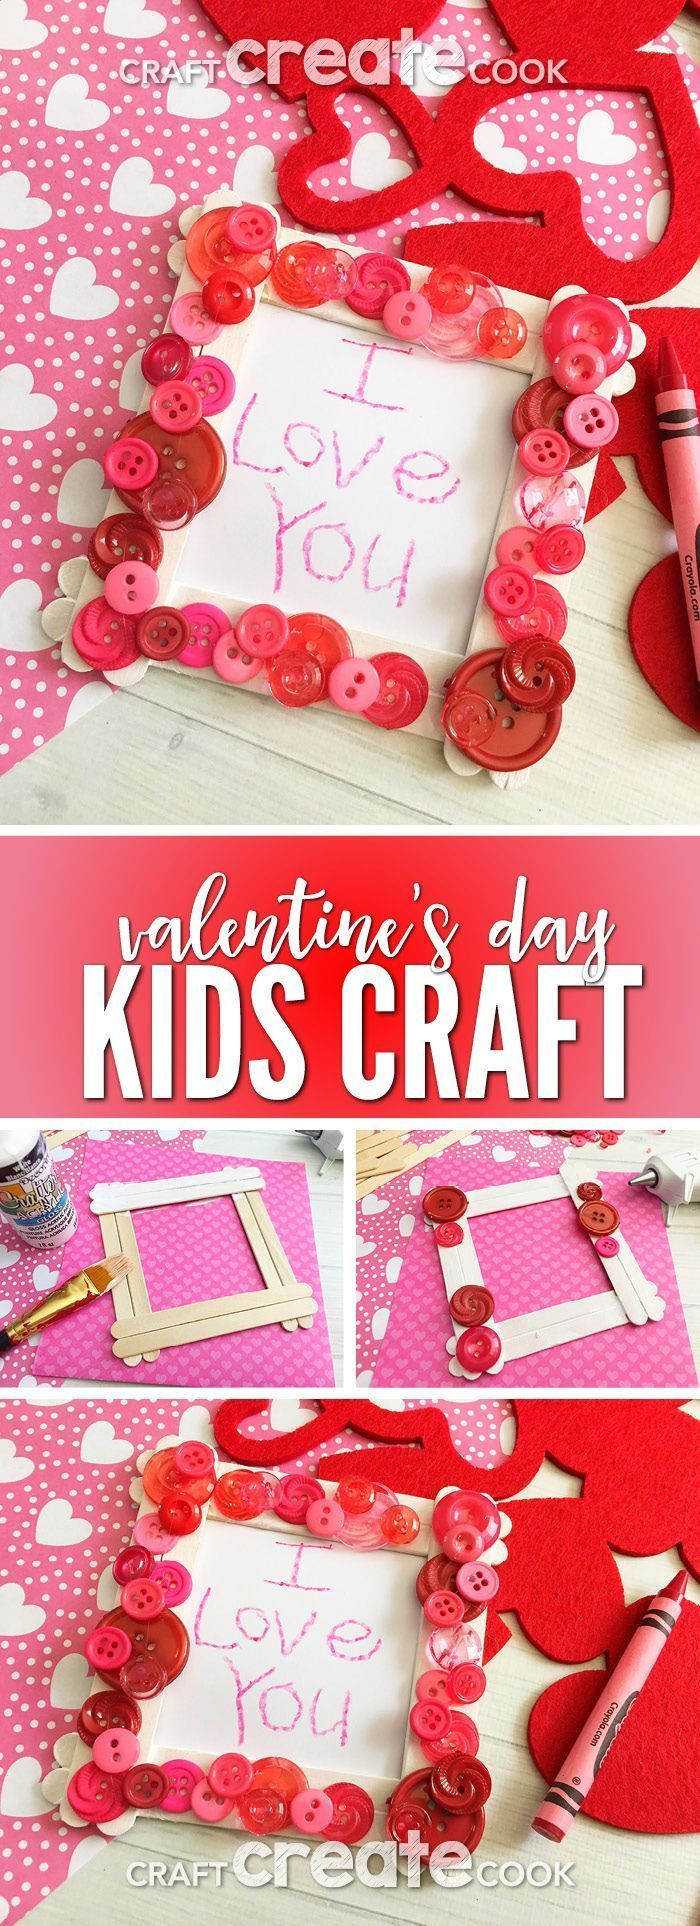 Valentines Kids craft